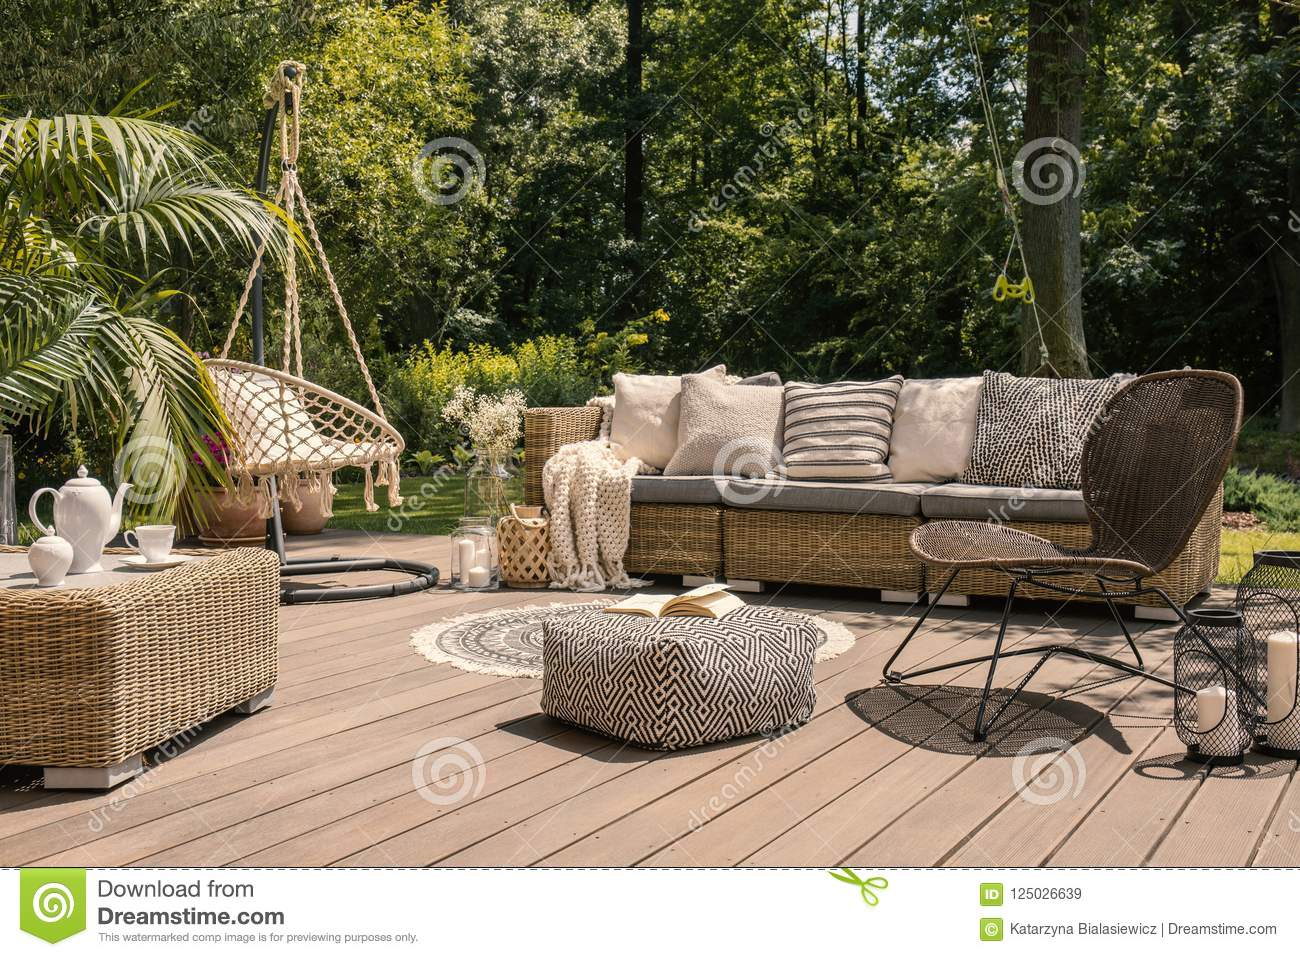 A Rattan Patio Set Including A Sofa A Table And A Chair On A Wooden Deck In The Sunny Garden Stock Image Image Of Patio Cushion 125026639